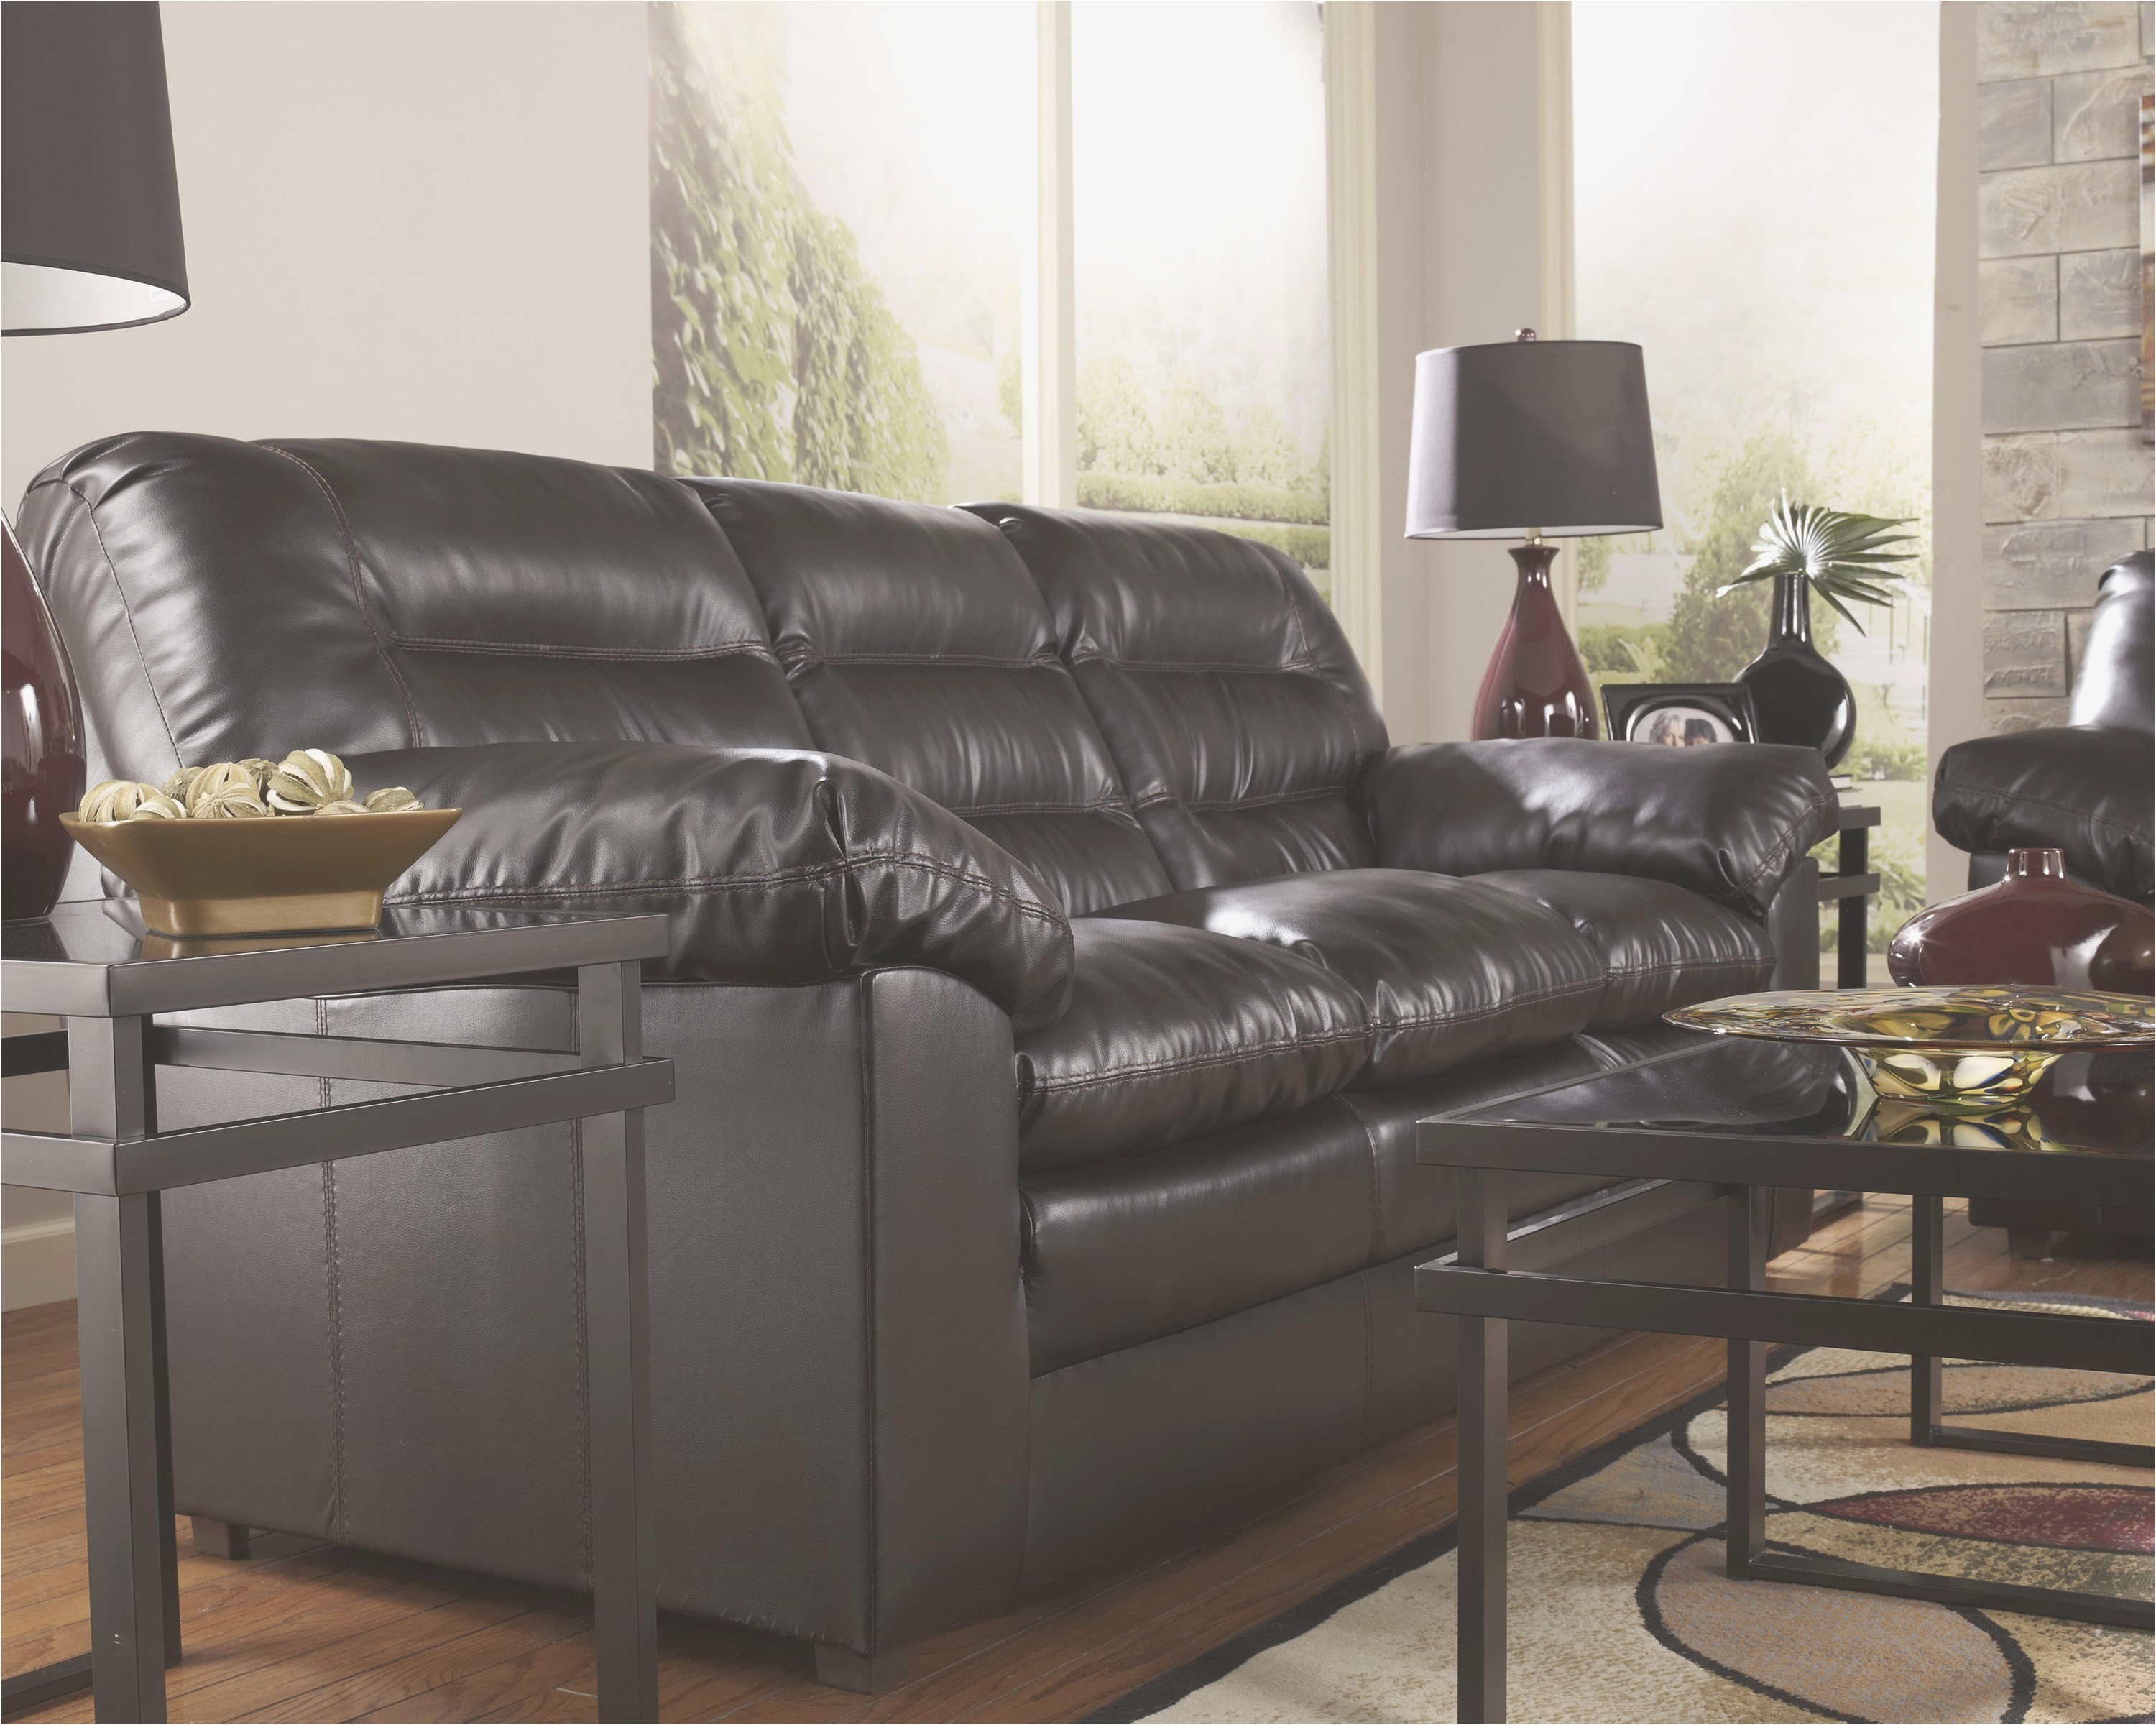 Best Place to Buy Leather sofa Singapore 50 Awesome Leather sofa Chair Images 50 Photos Home Improvement